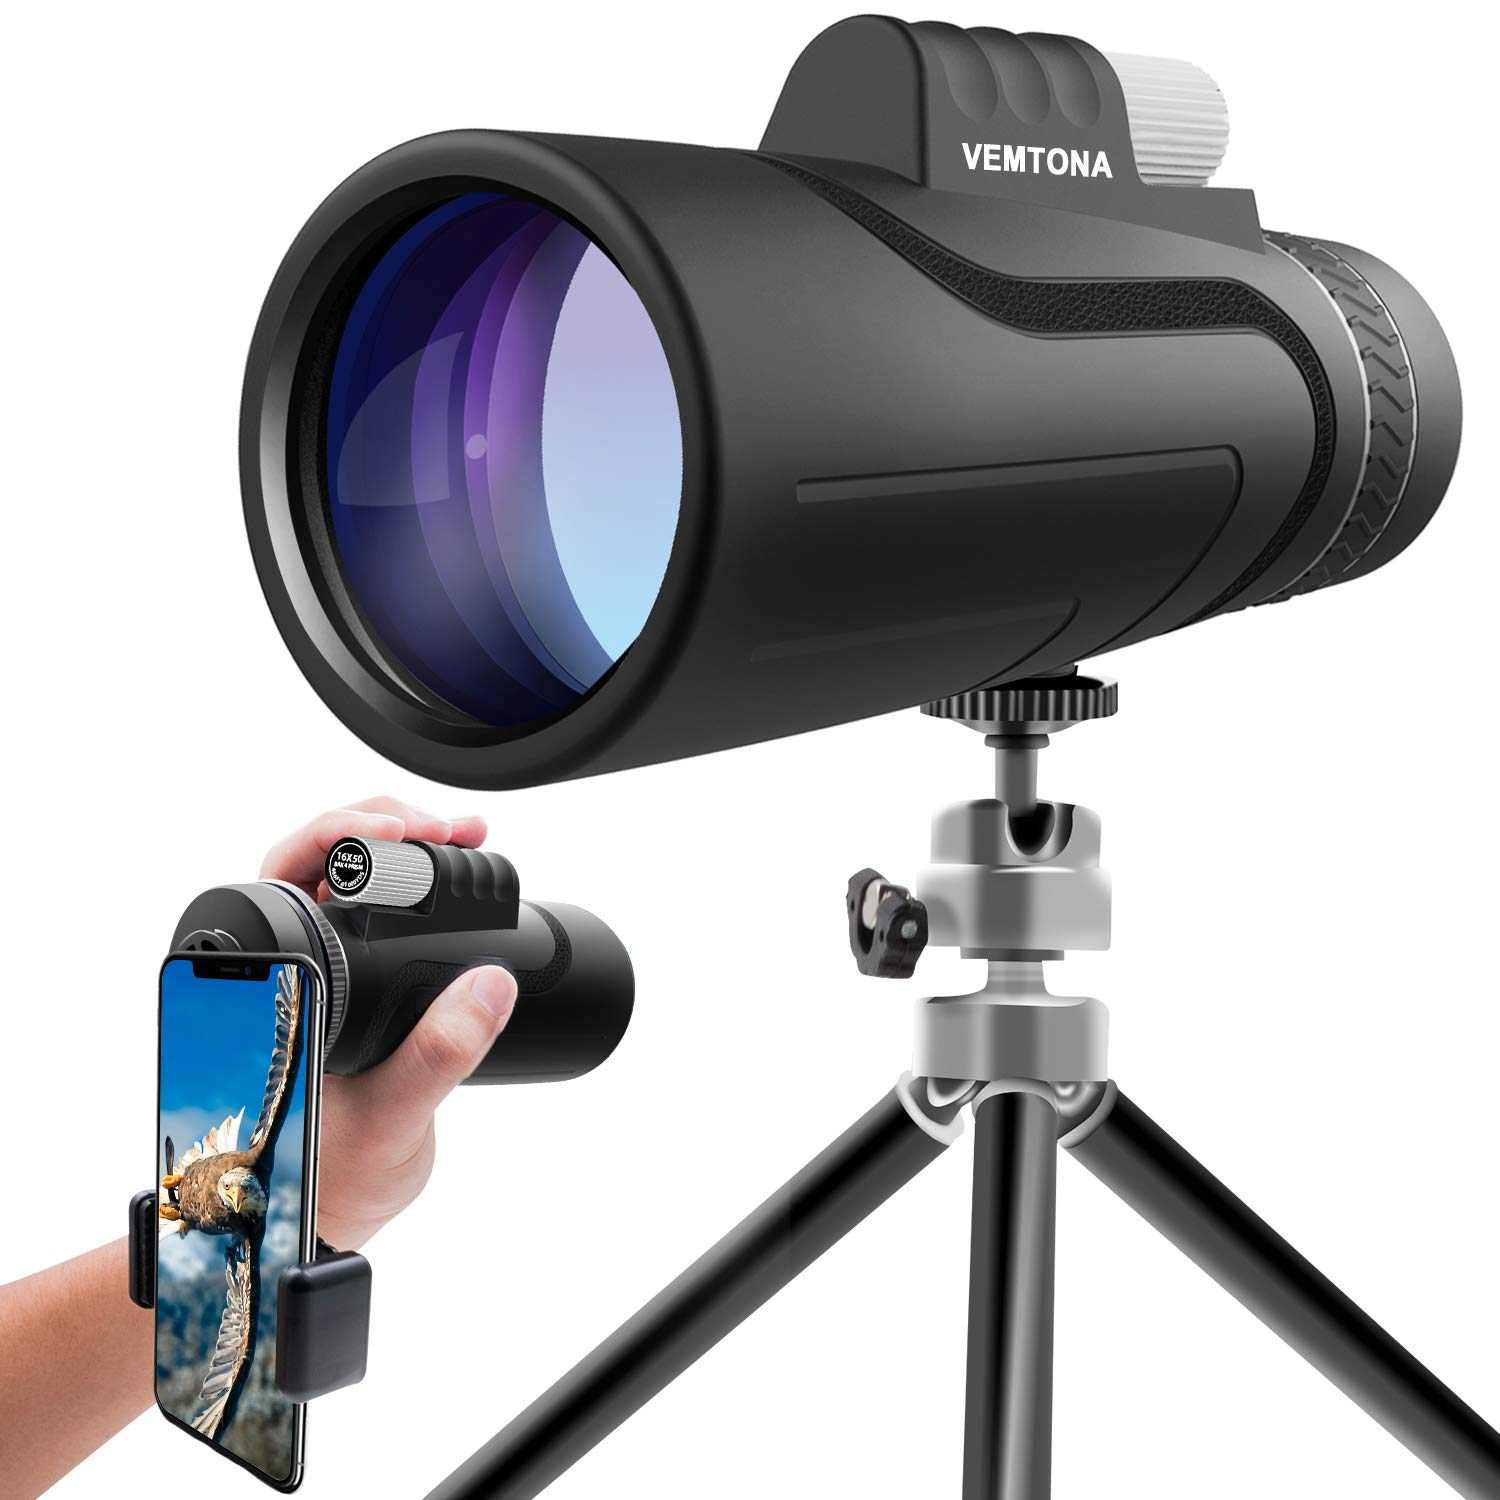 16x50 Monocular Telescope, VEMTONA High Powered Monoculars Scope for Adults with Long Tripod and Phone Adapter, Waterproof HD BAK4 Prism FMC Len Compact Optic for Bird Watching/Outdoor/Concert/Travel